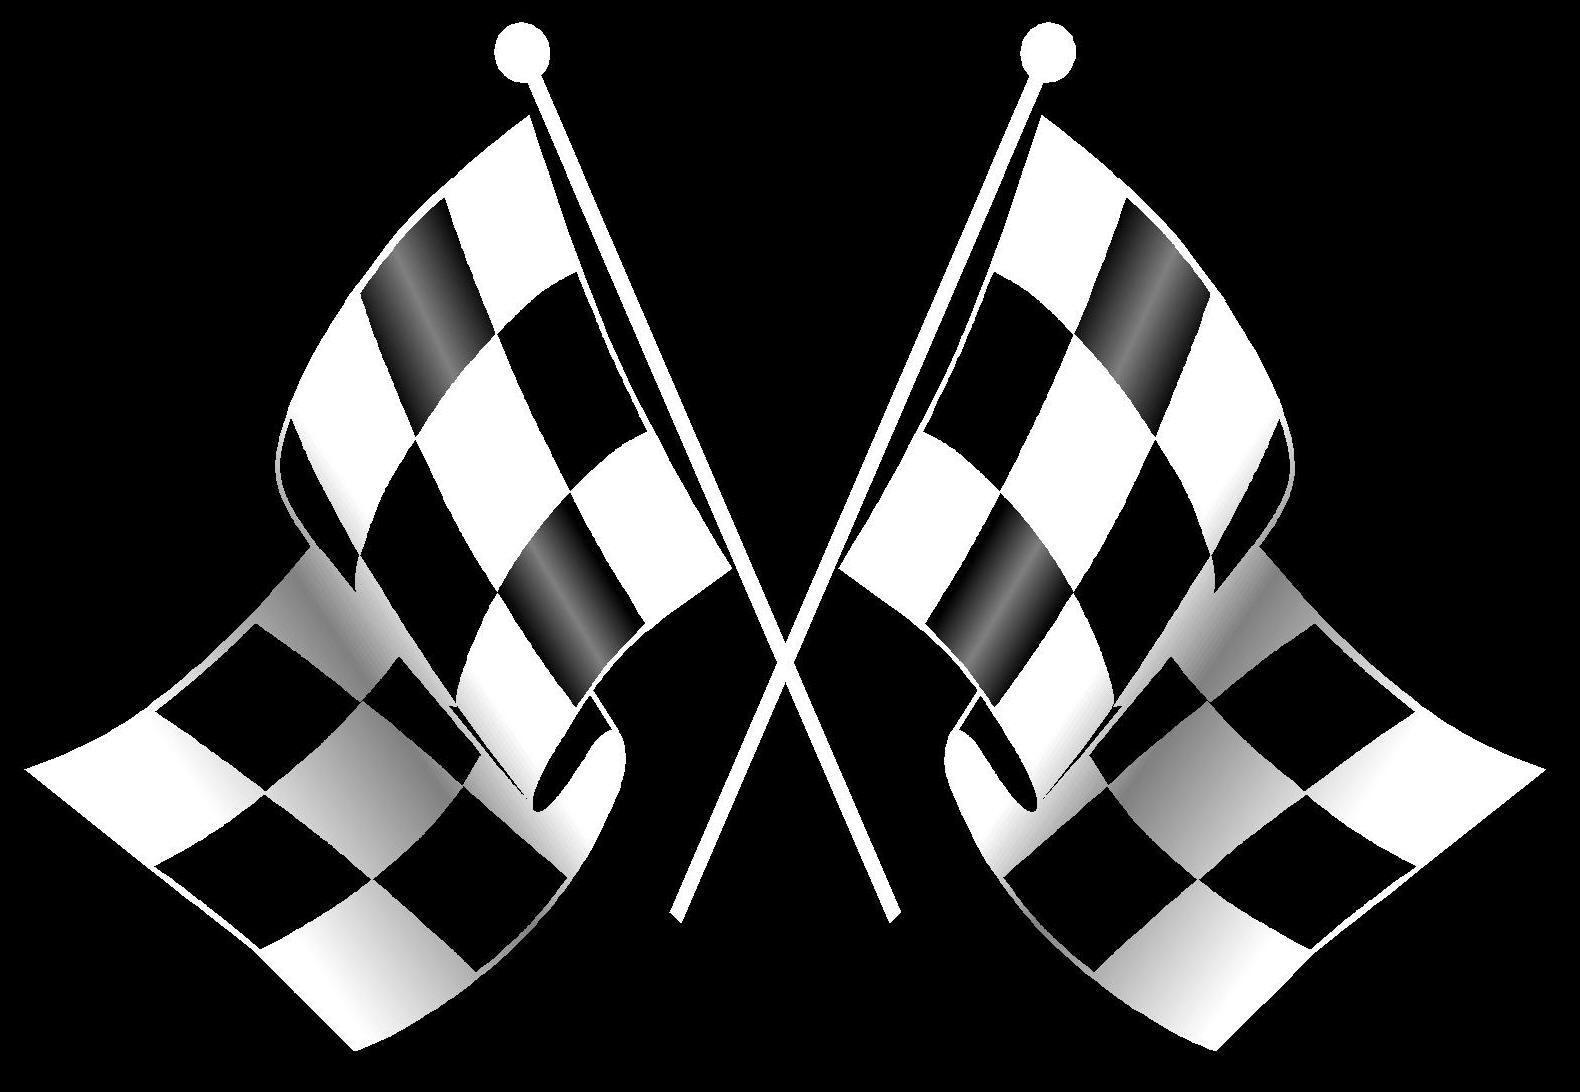 Checkered Flag   Free Images At Clker Com   Vector Clip Art Online